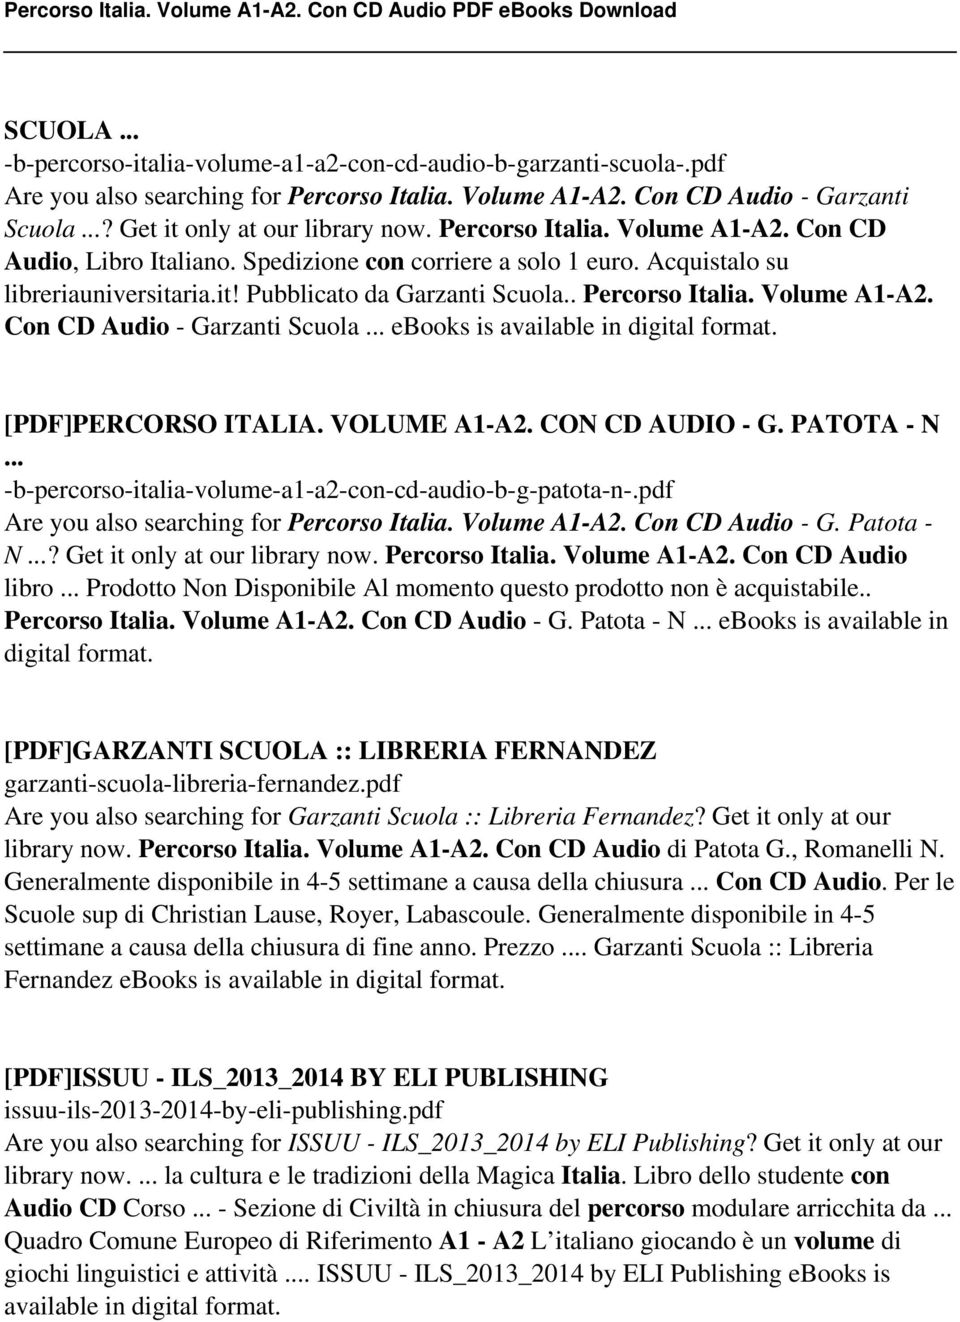 Percorso italia volume a1 a2 con cd audio pdf pdf volume a1 a2 con cd audio garzanti scuola ebooks is fandeluxe Gallery